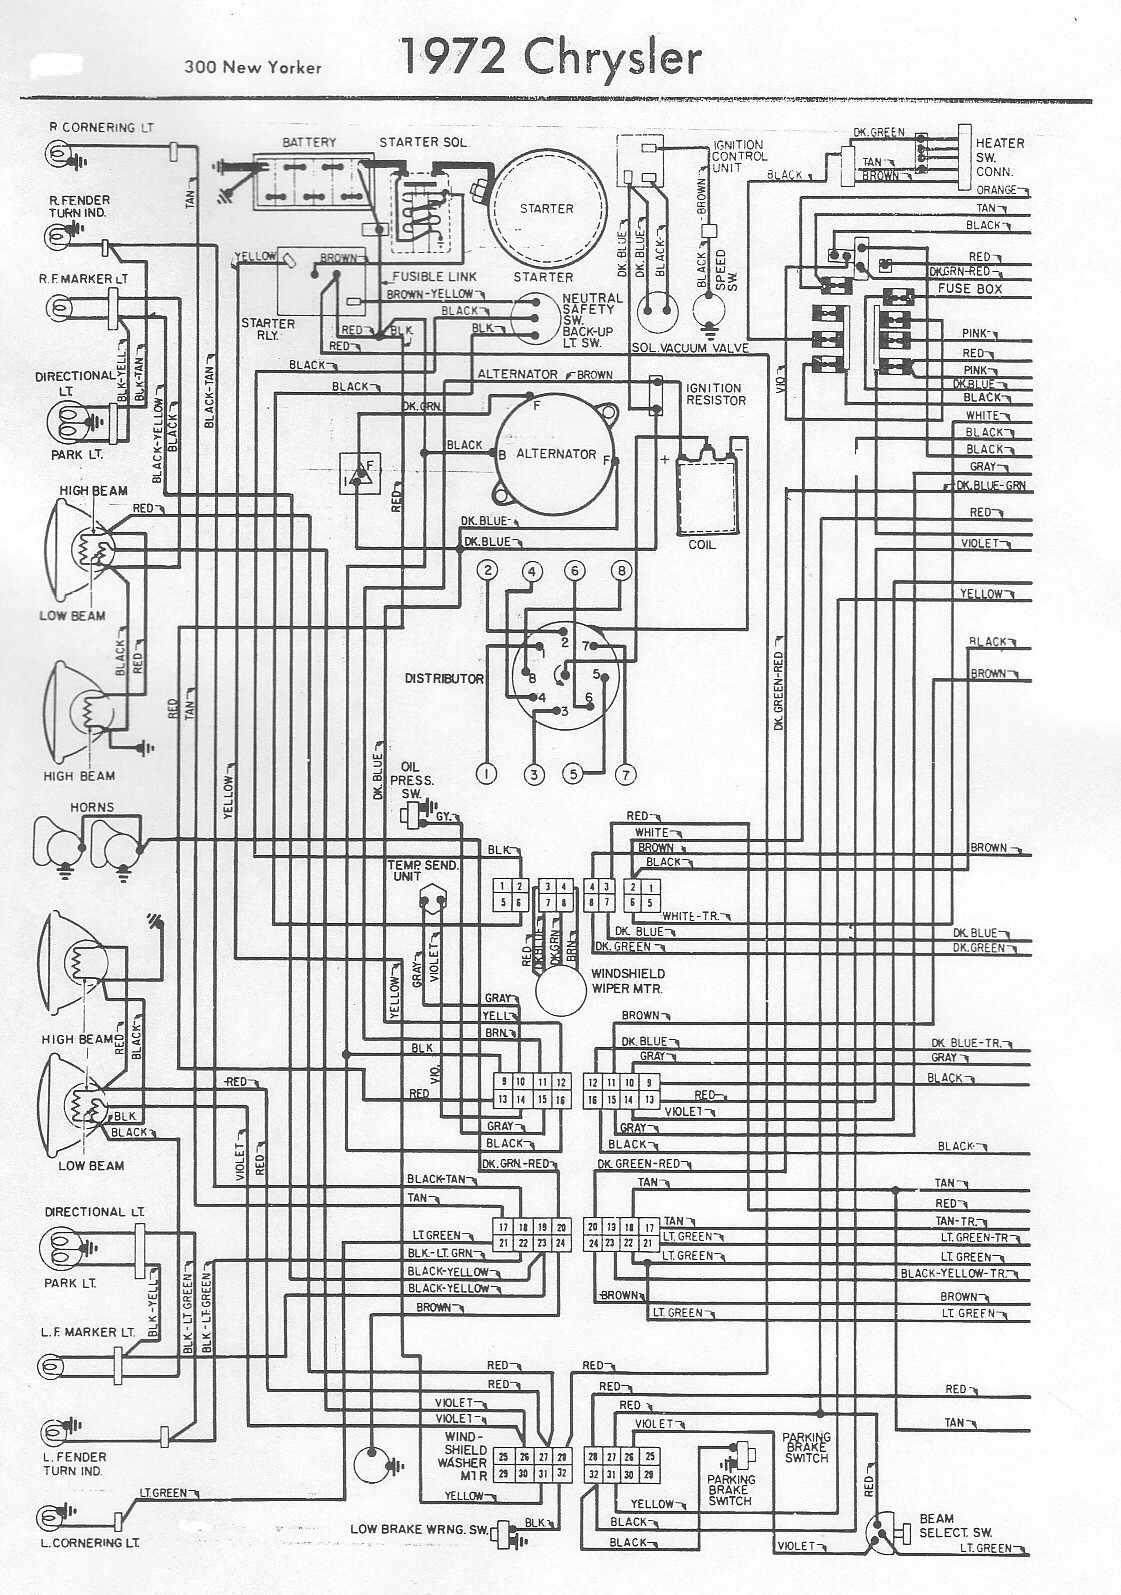 Window Wiring Diagram Chrysler 300c - Trusted Wiring Diagram •